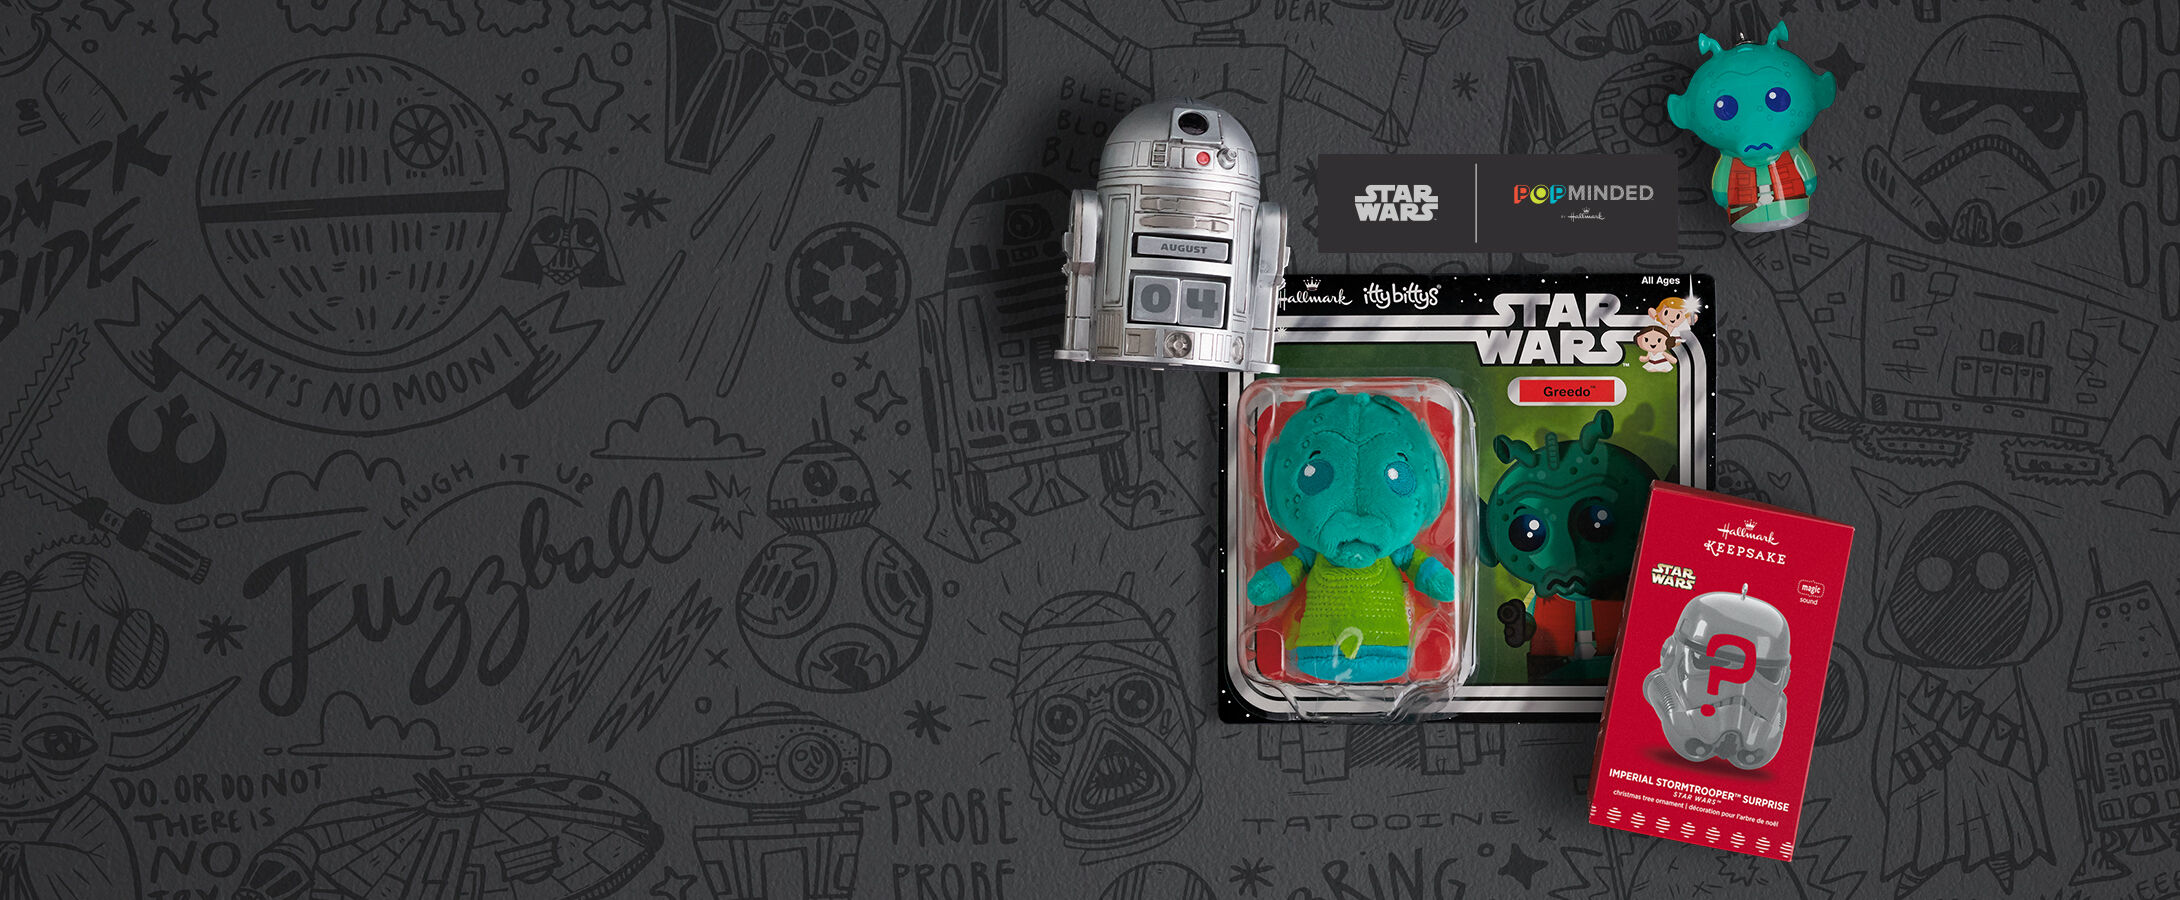 PopMinded Star Wars™ collection